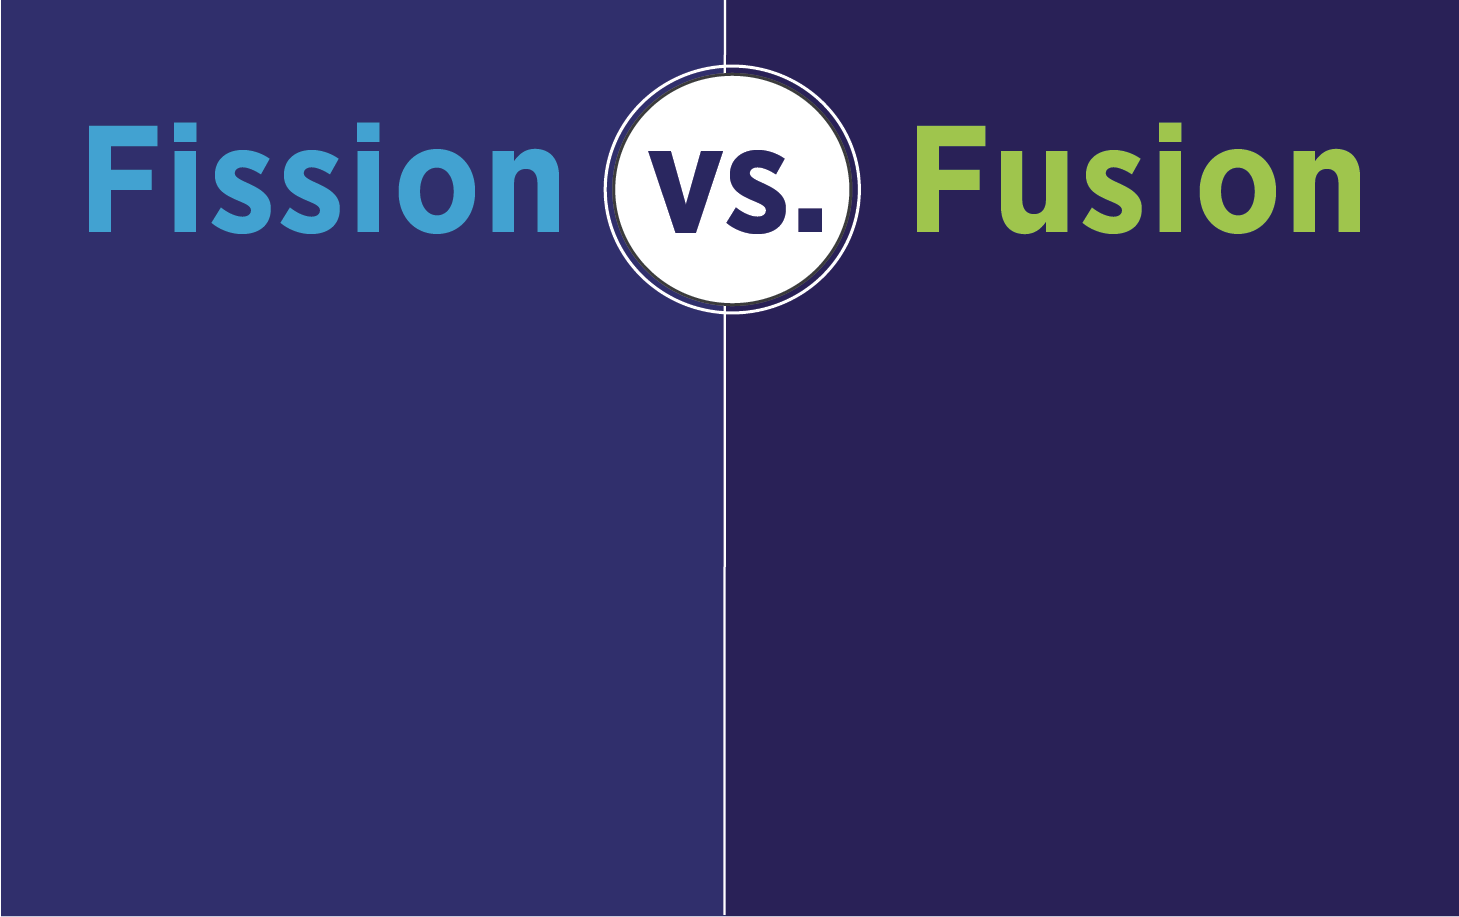 fission vs fusion venn diagram 500 watt audio amplifier circuit and what is the difference department of energy